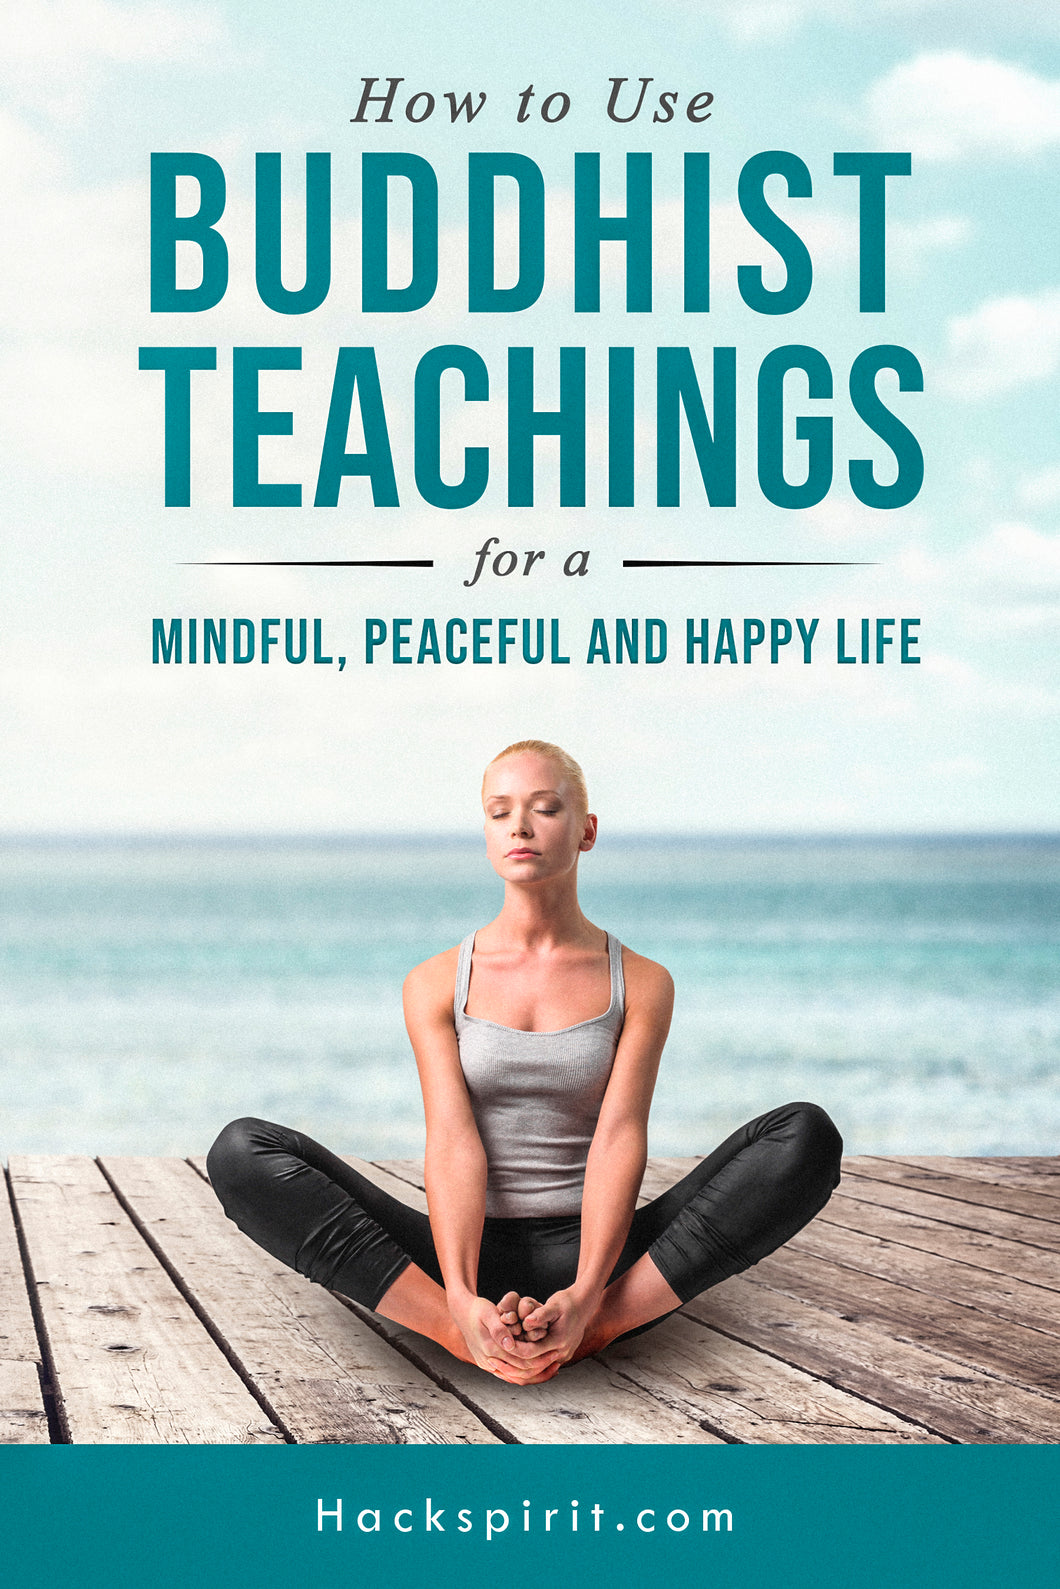 How to Use Buddhist Teachings for a Mindful, Peaceful and Happy Life